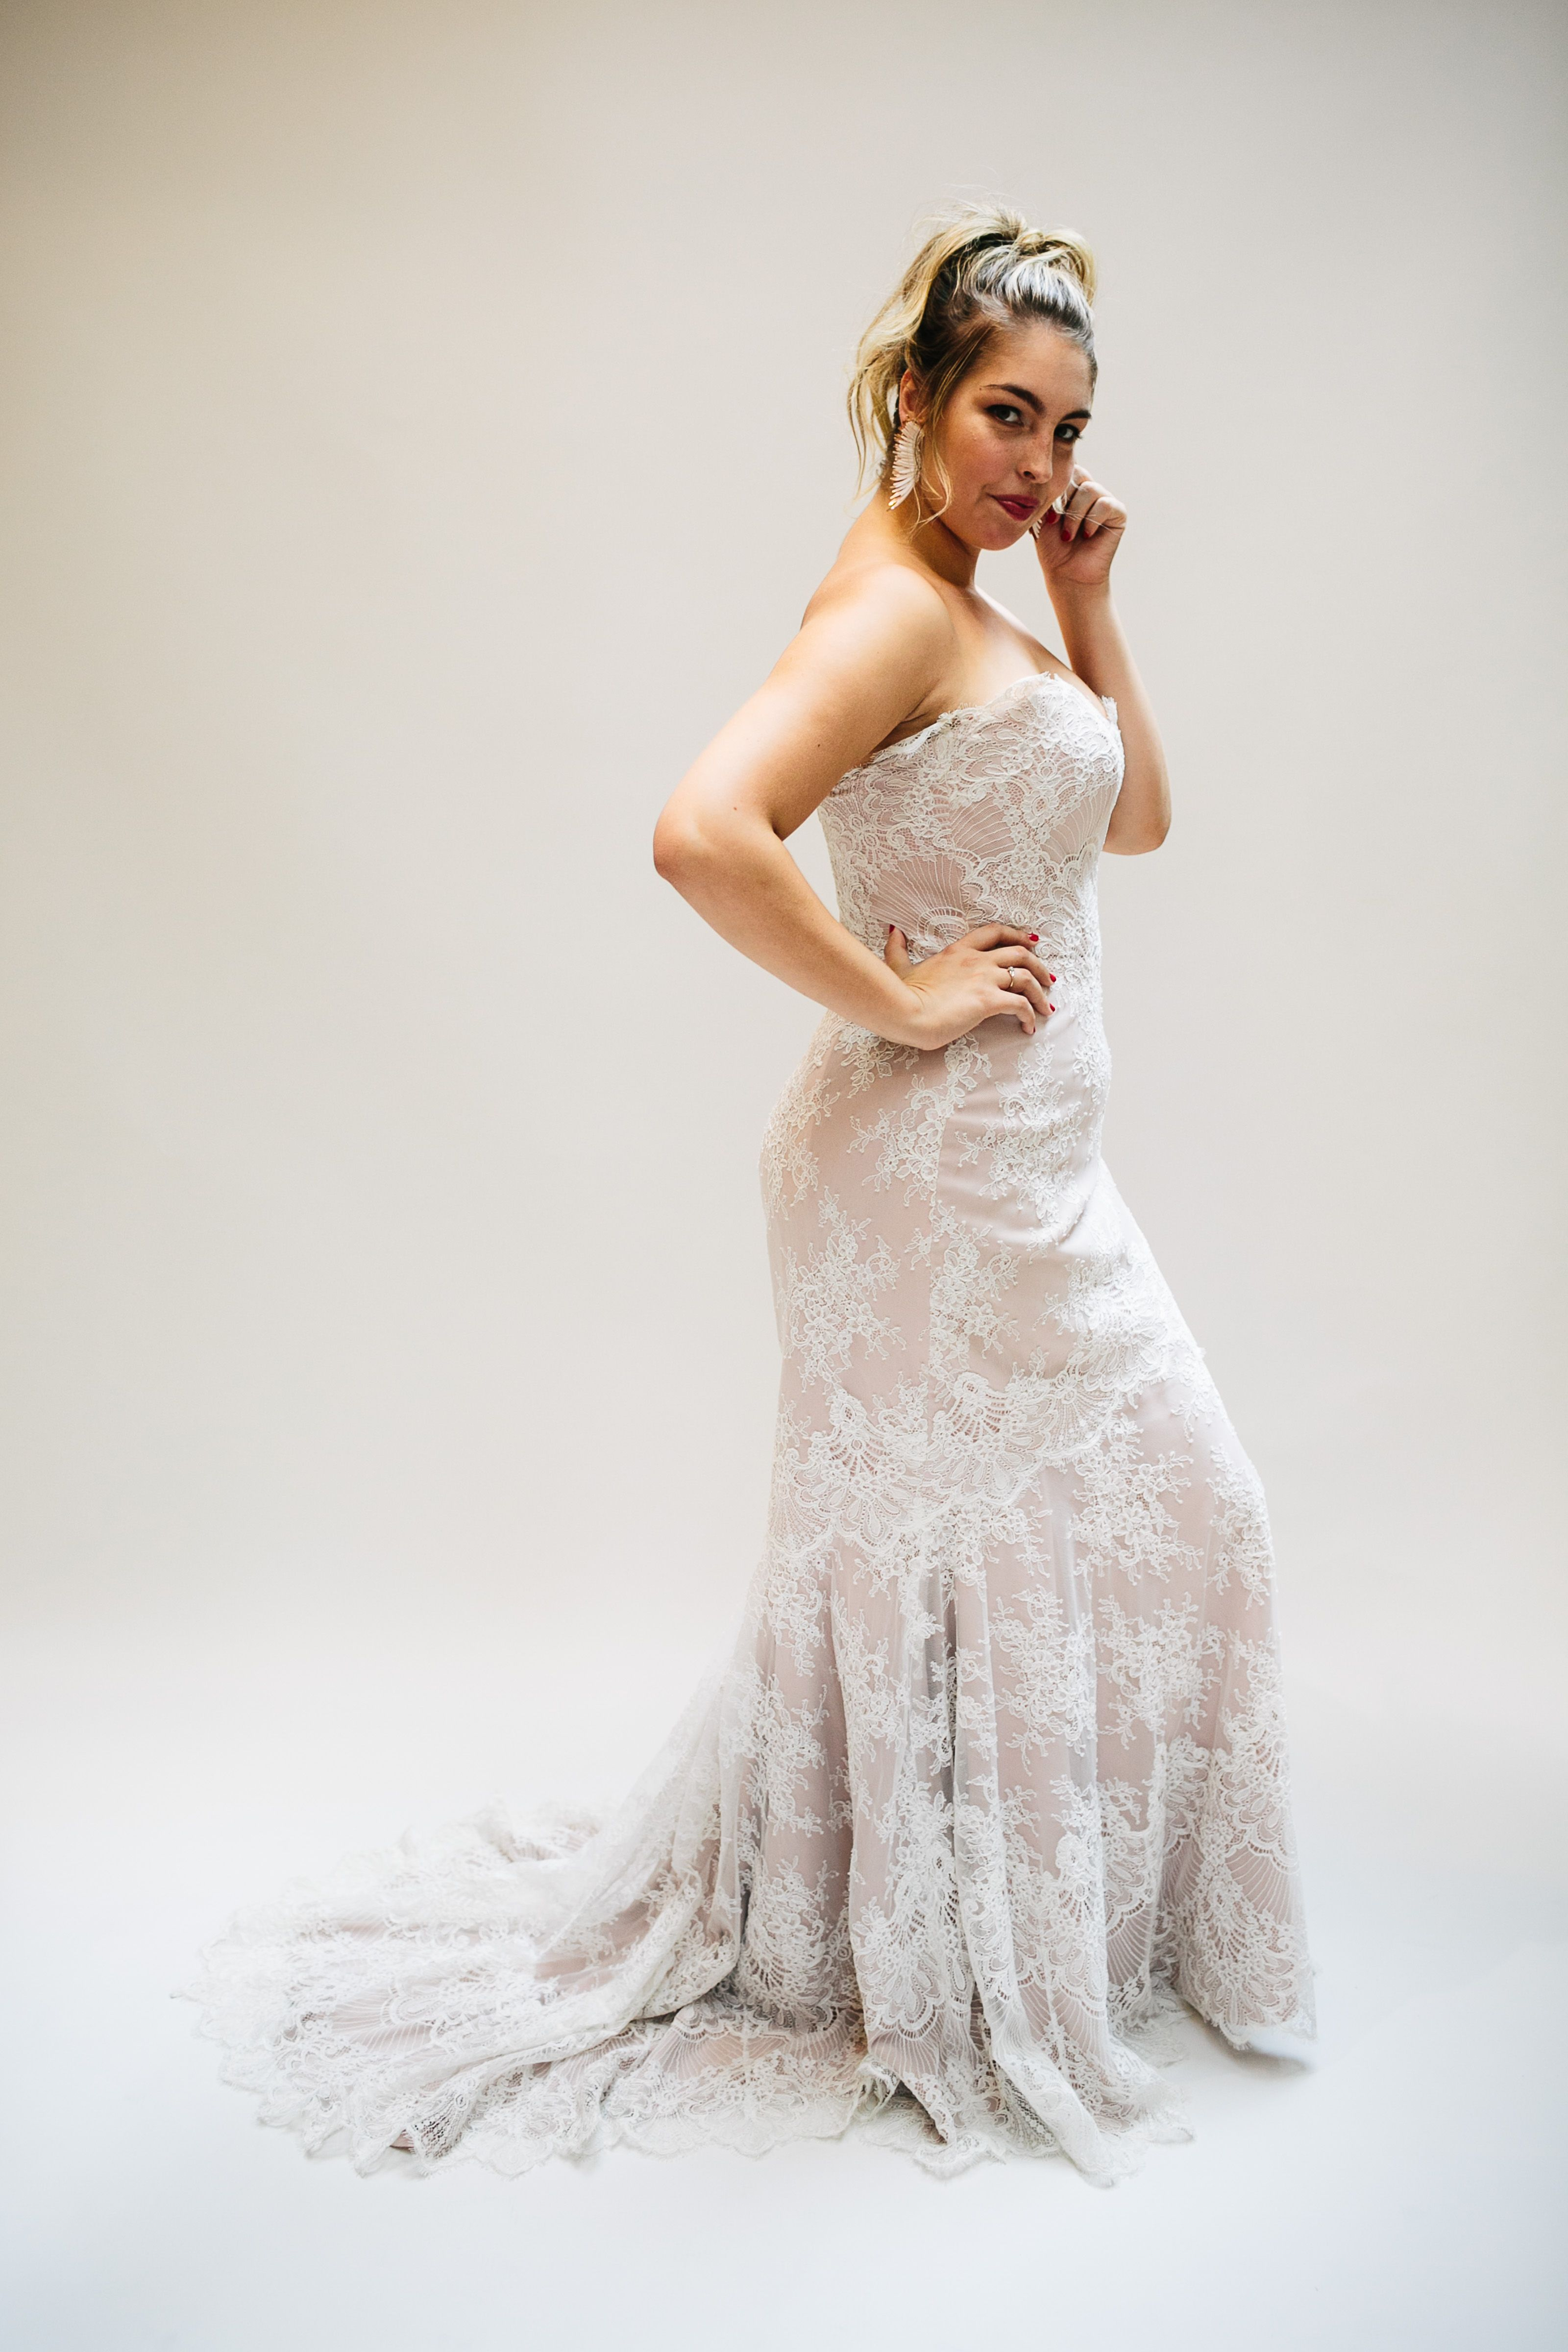 Wedding dresses for curvy brides  Lovely Bride Launches PlusSize Collection Exclusive Details  Boho